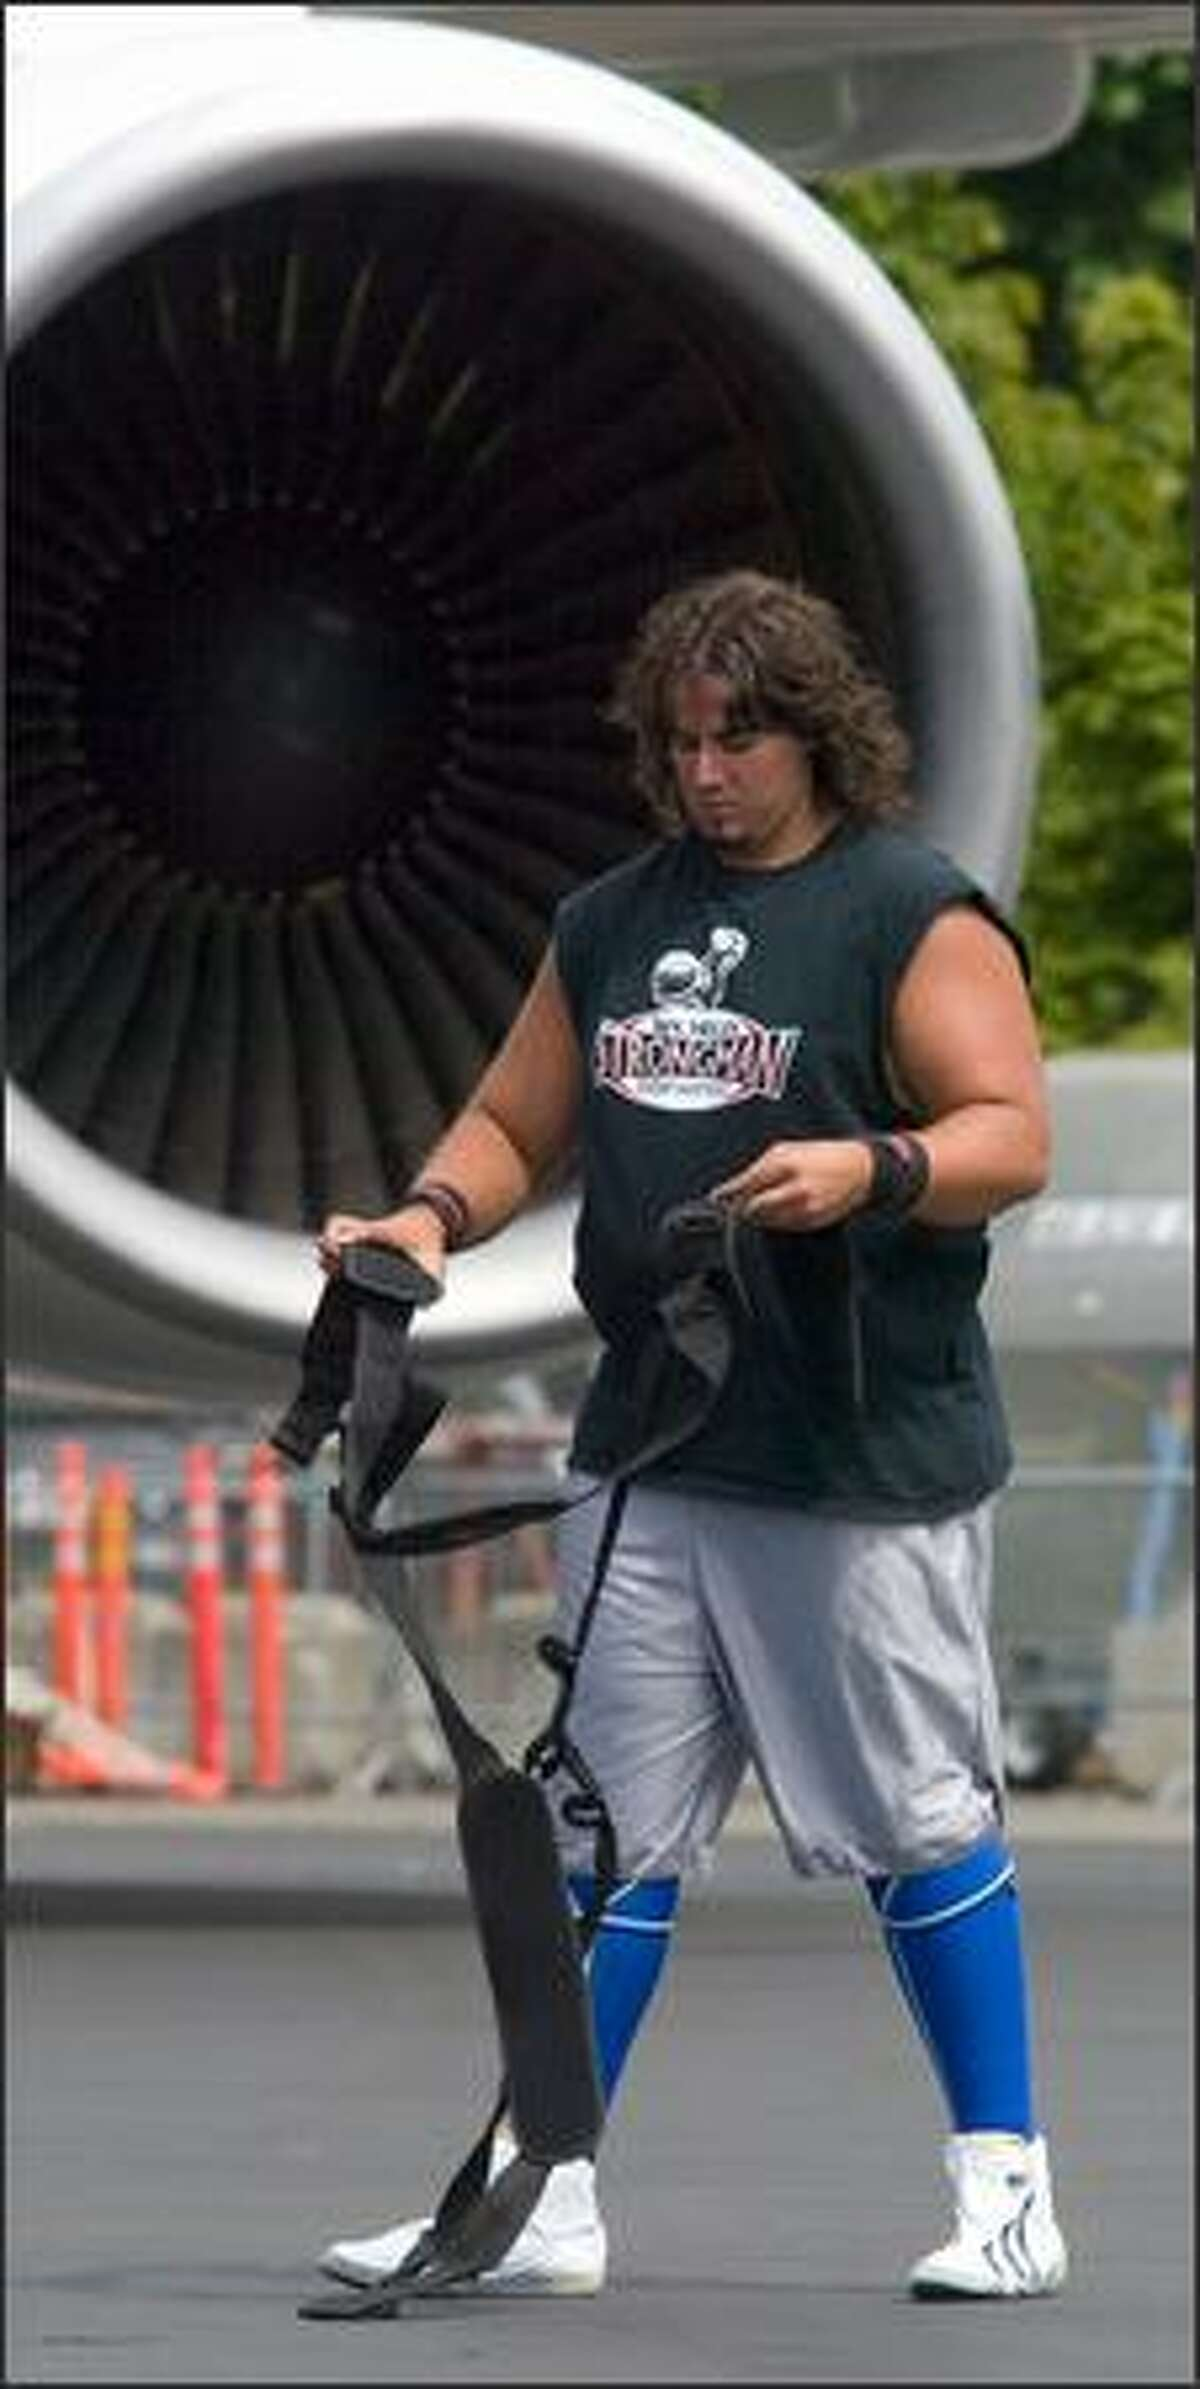 Tacoma strongman Mark Kirsch inspects a harness that broke while pulling a Boeing 767 cargo jet at the Big Brothers Big Sisters Big Plane Pull at Boeing Field.